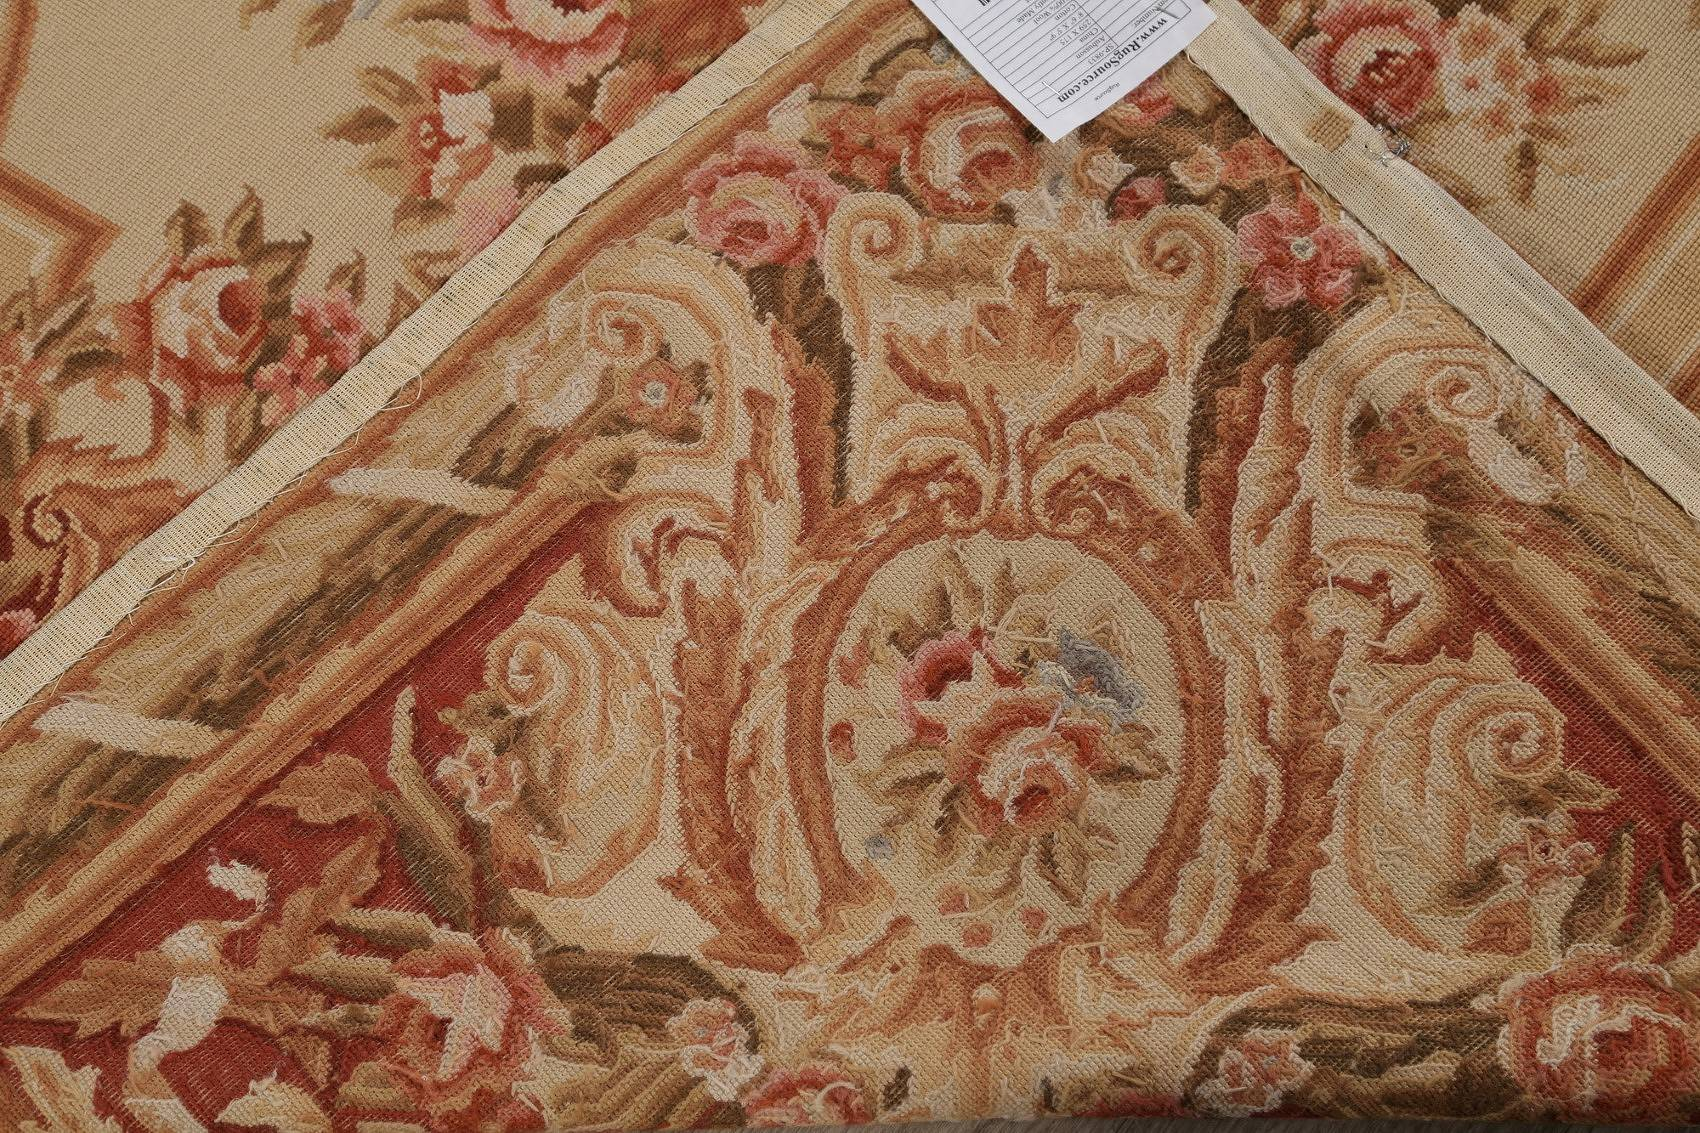 Floral Beige Aubusson Chinese Oriental Hand-Woven Area Rug Wool 6x9